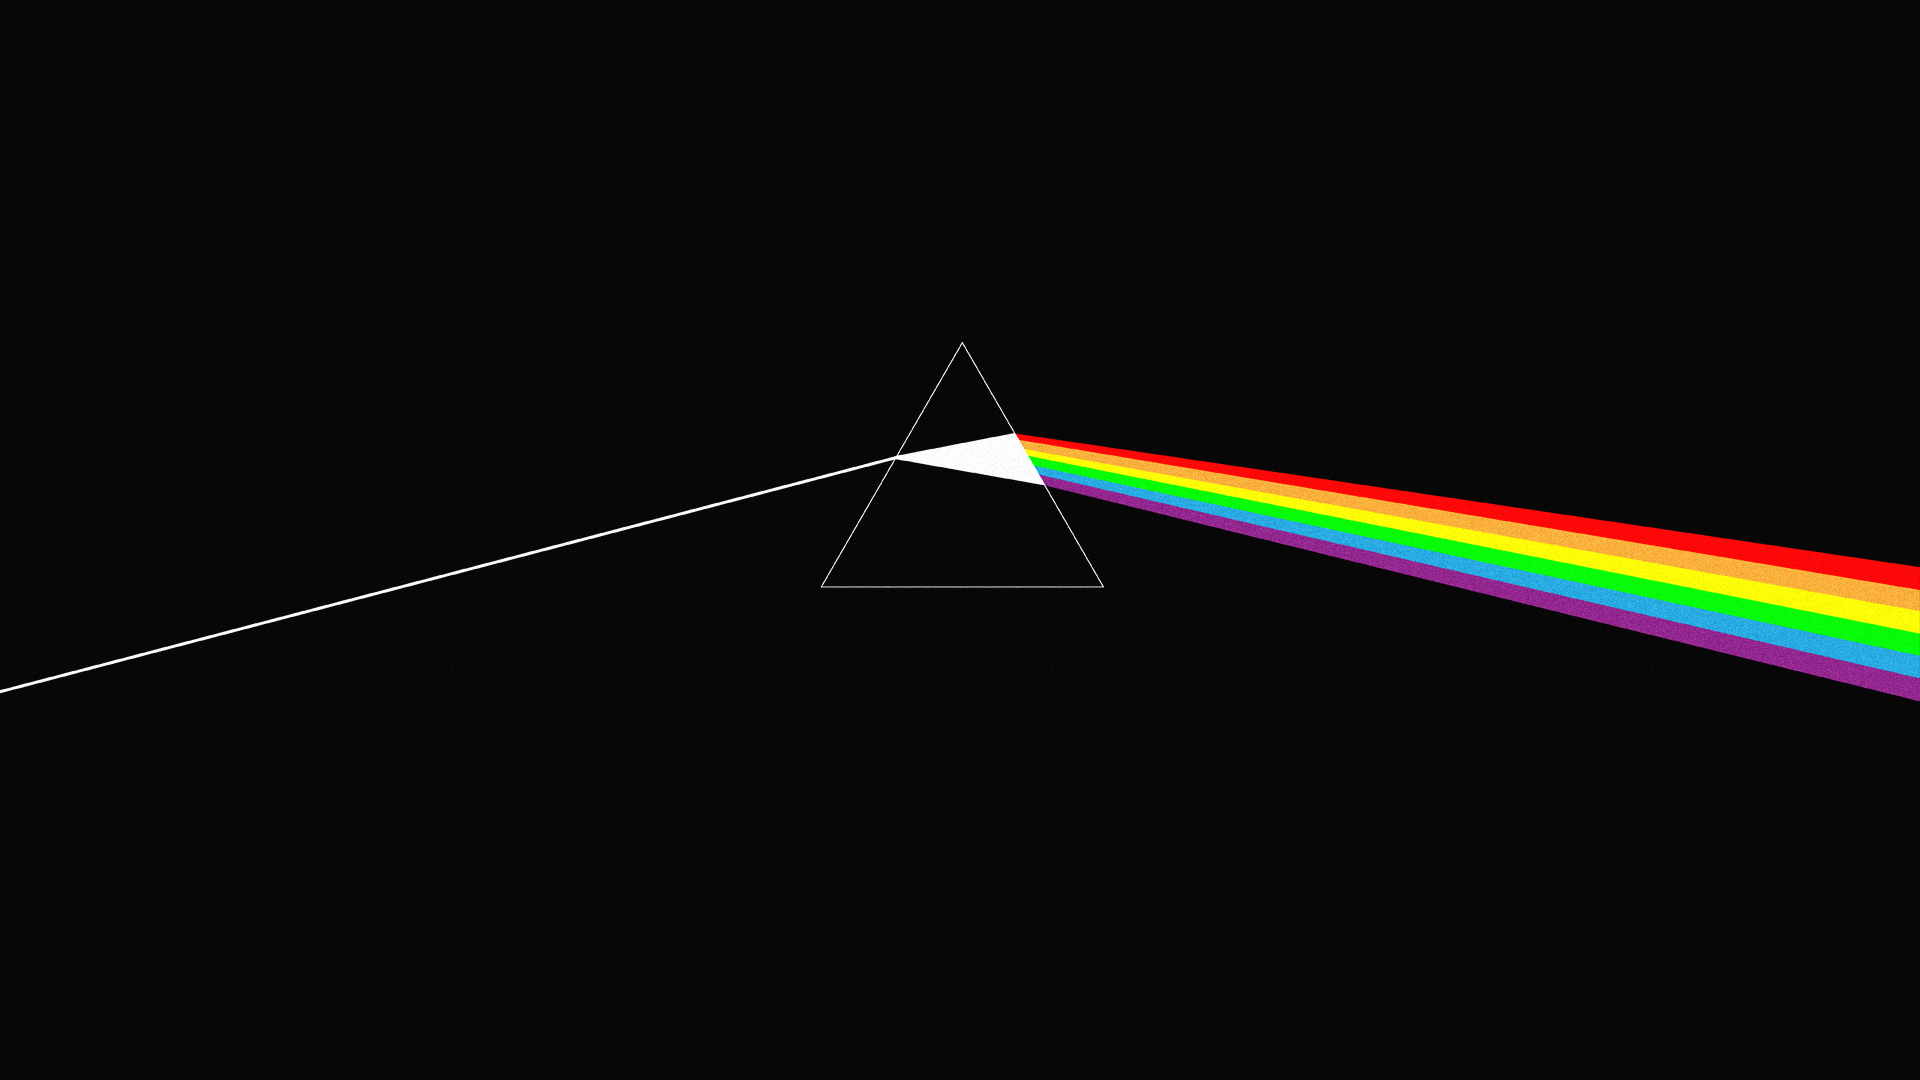 Dark Side Pink Floyd Wallpaper HD And Images cute Wallpapers 1920x1080